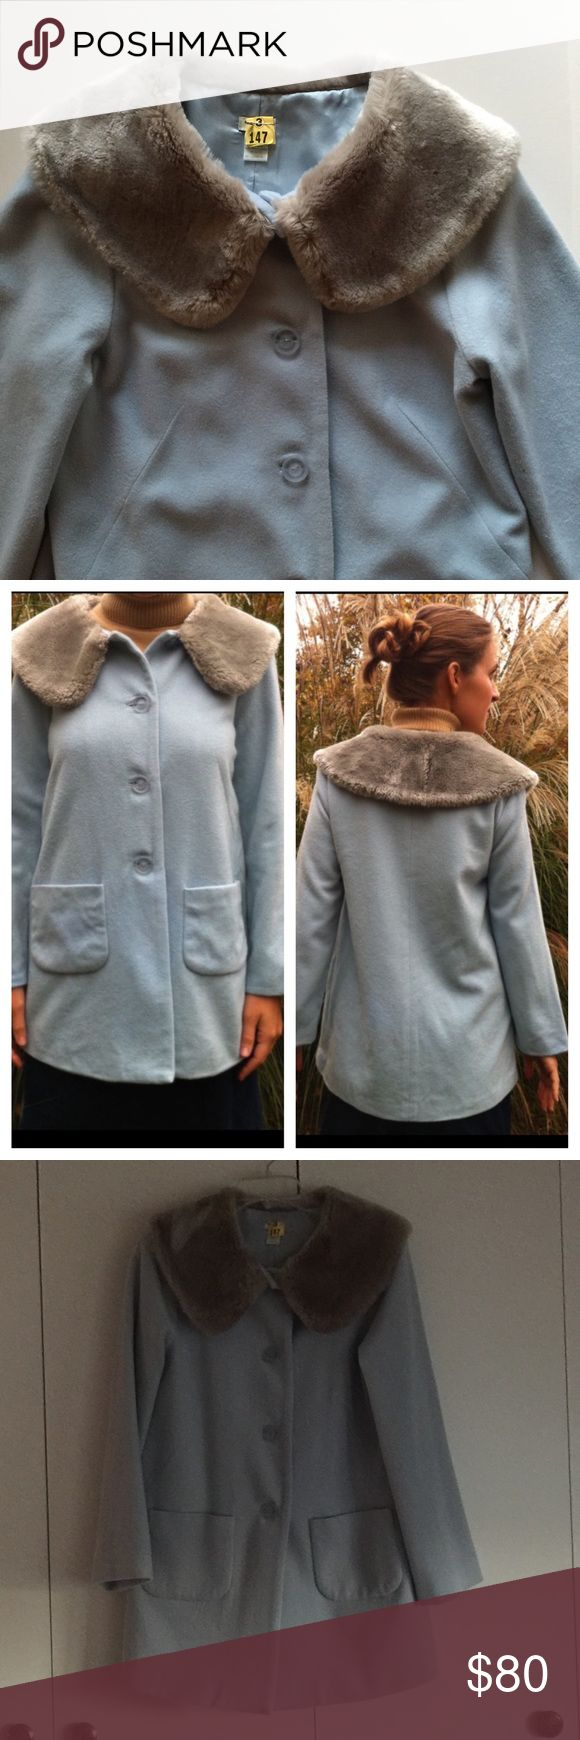 Anthropologie blue coat by Odille- size 10 Anthropologie coat by Odille- size 10. Gorgeous sky blue color with faux fur collar. Fully lined. Only one tiny nick as shown in photo. I only noticed after scrutinizing. Freshly dry-cleaned and in excellent condition. Anthropologie Jackets & Coats